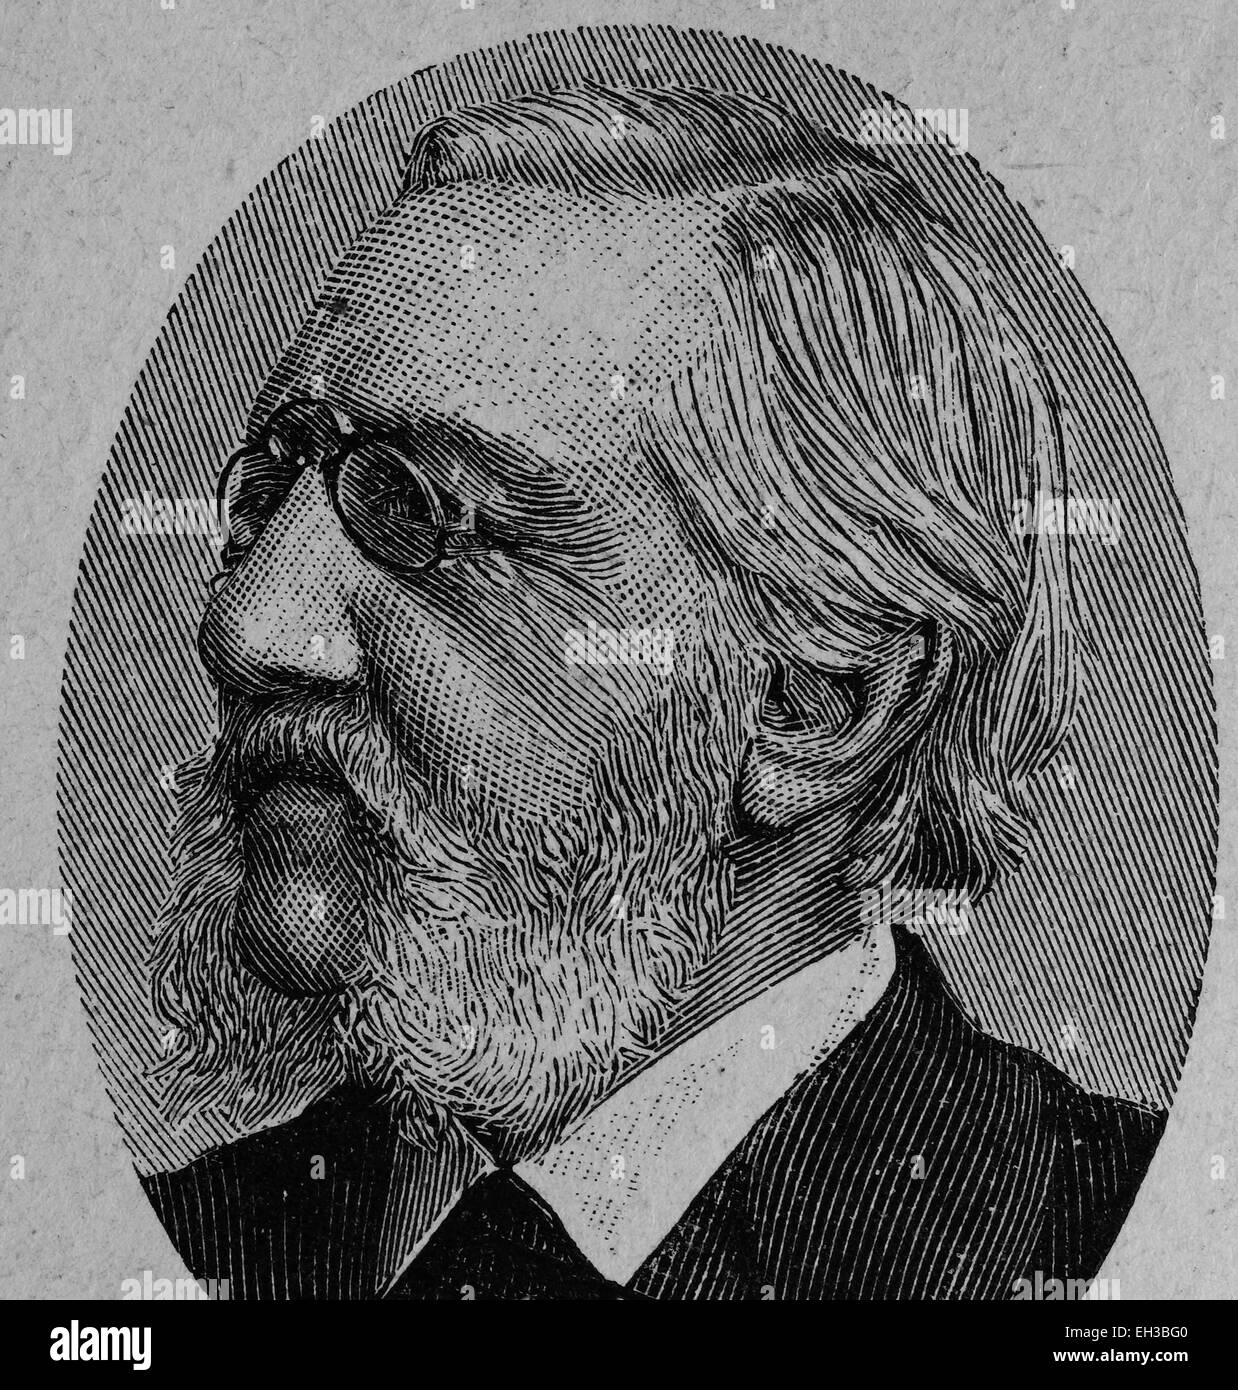 Carl Stremayr, 1823 - 1904, member of the Frankfurt Parliament, wood engraving, about 1880 - Stock Image